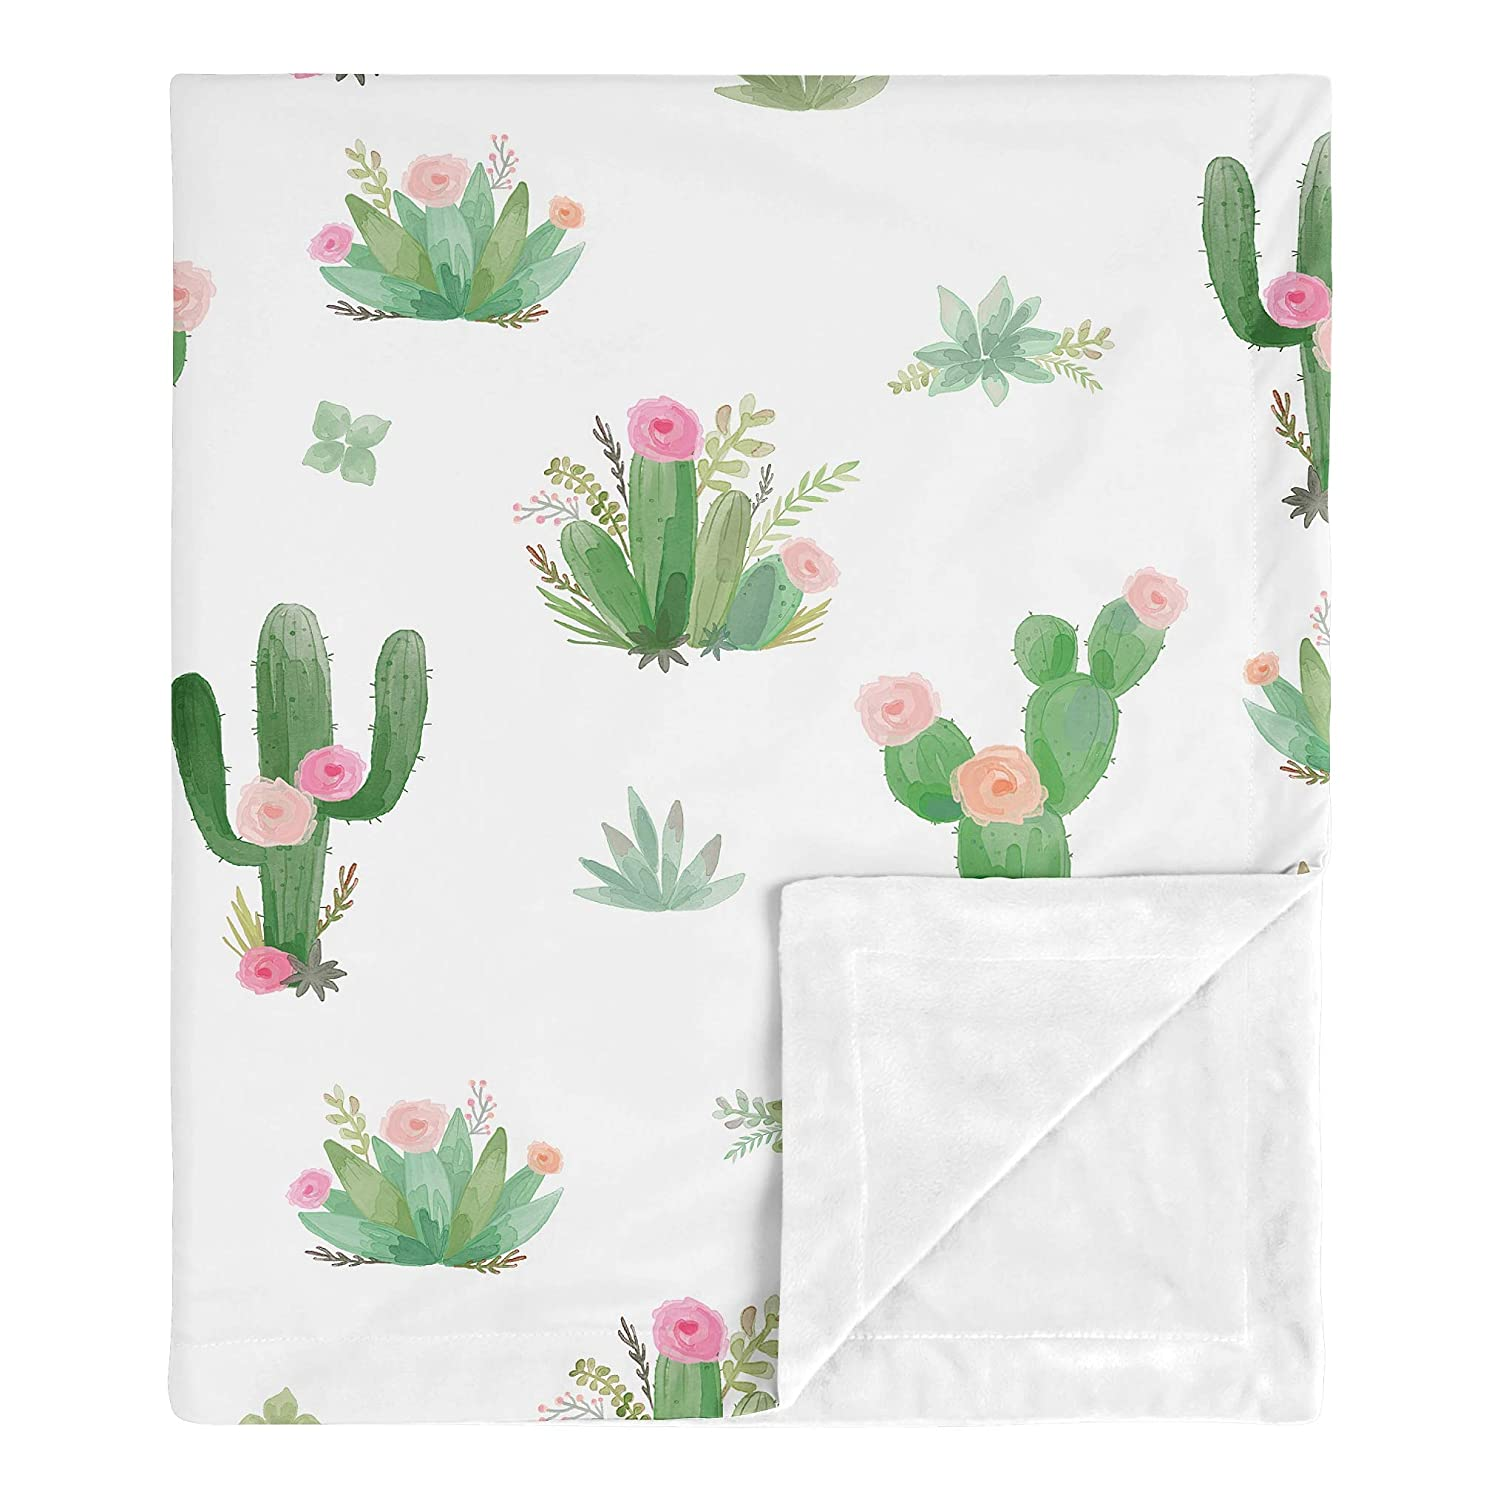 Bedding Set Milestone Blanket Pink and Green Cactus Personalized Baby Quilt Baby Girl Shower Gift Boho Nursery Name Quilt Succulent